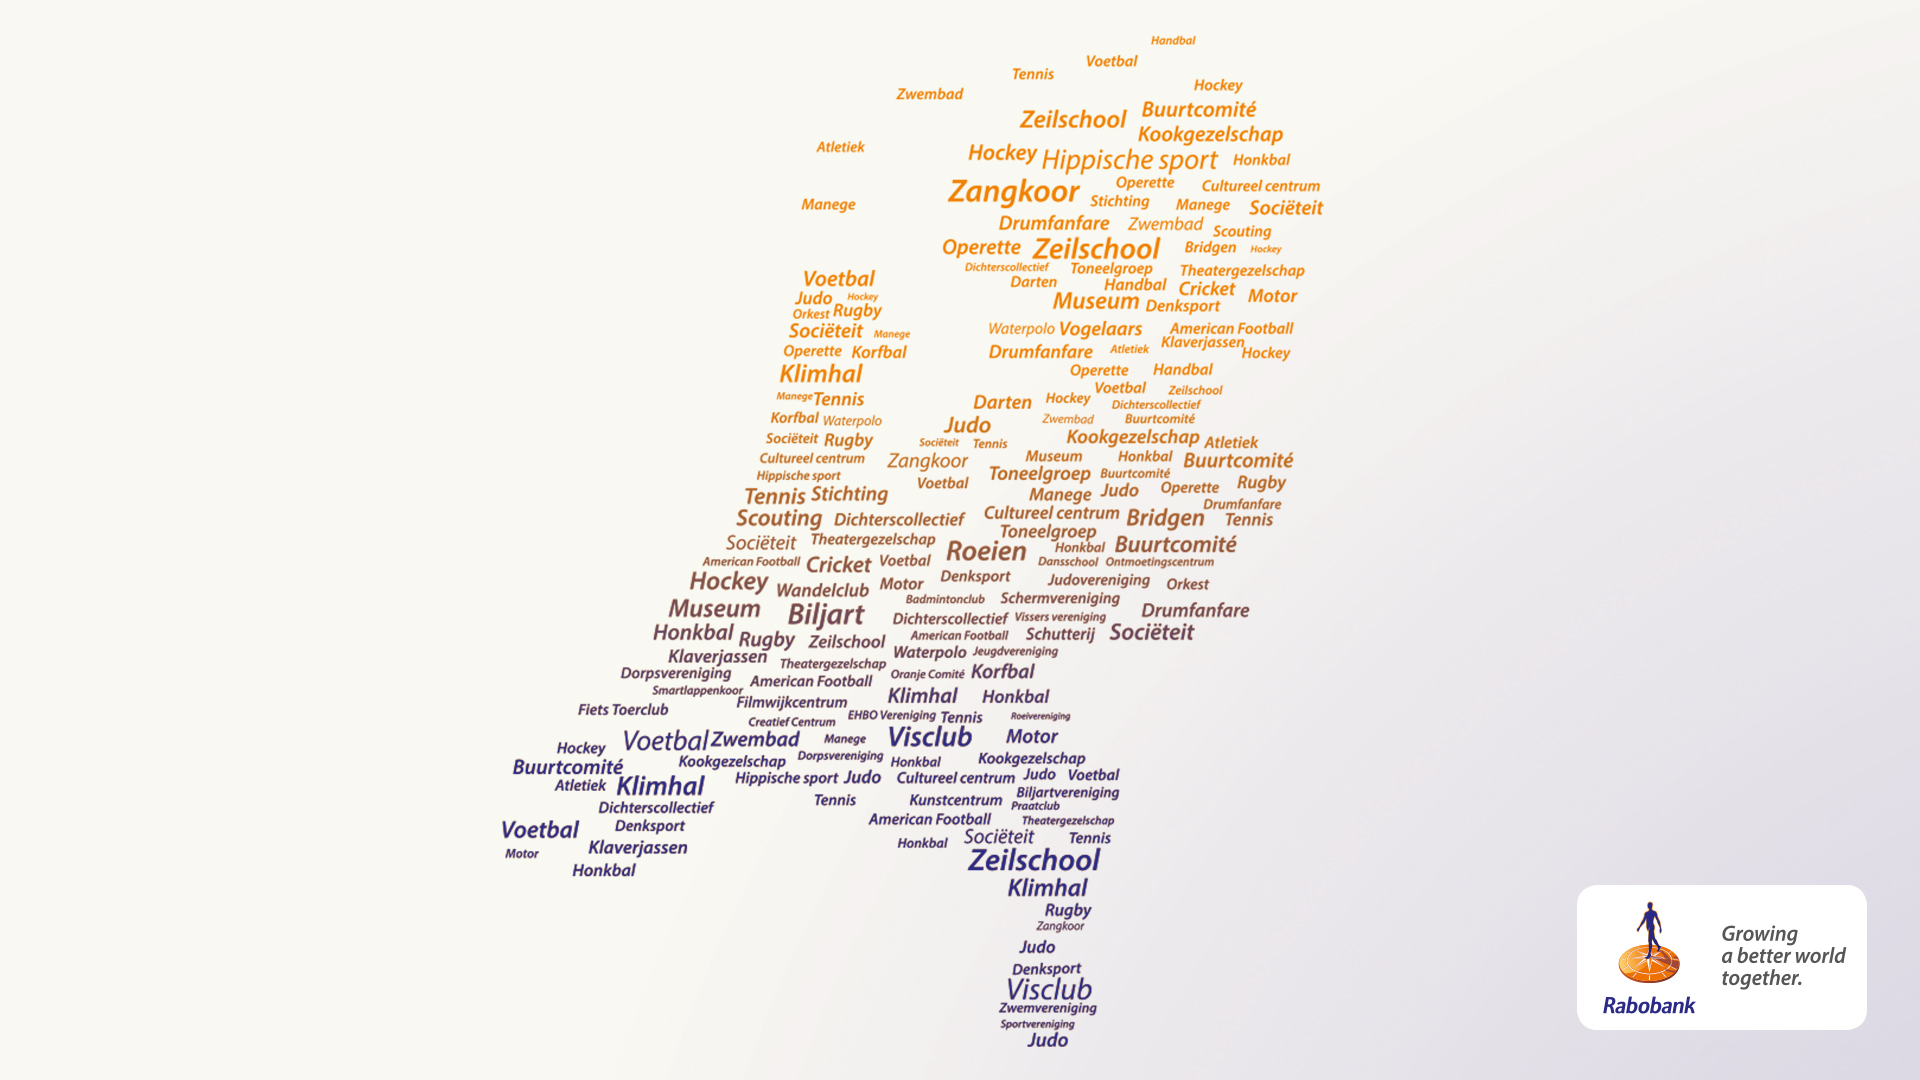 RABO ClubSupport Wordmap Holland 1920x1080 02